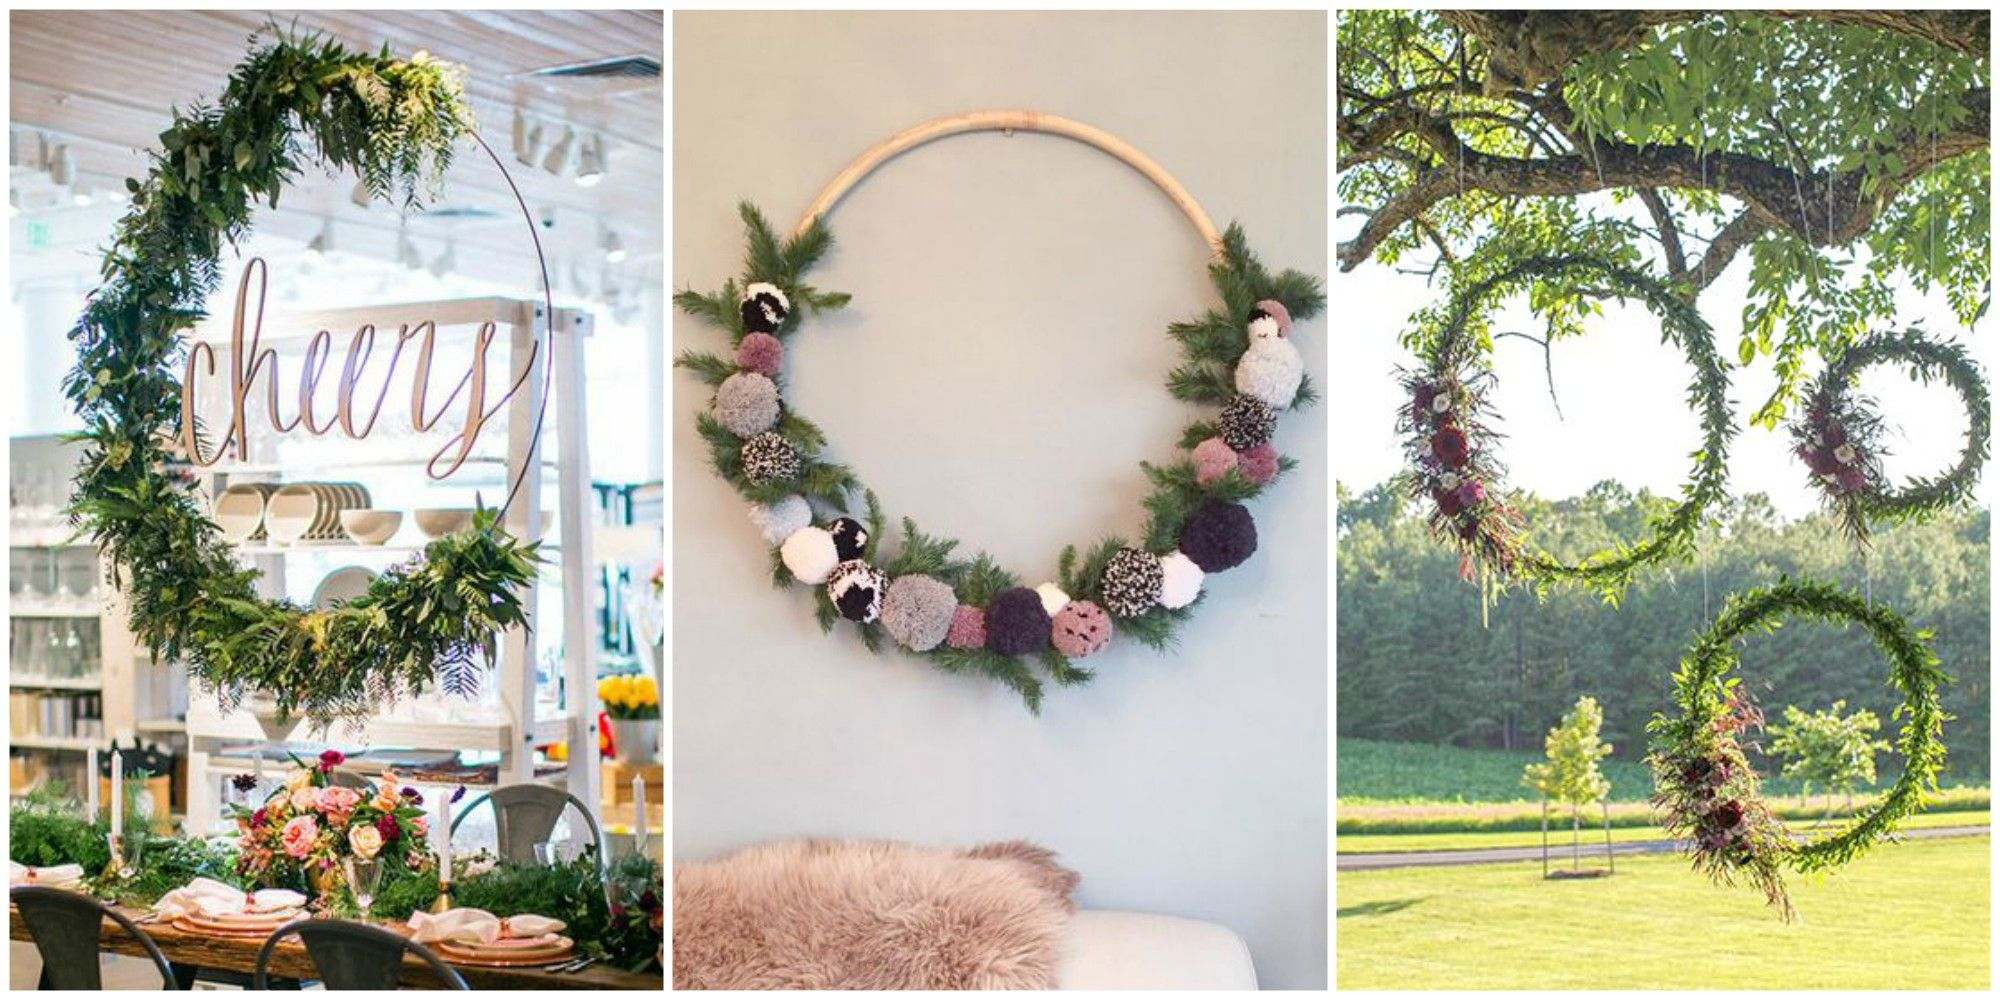 How to Make Large Hula Hoop Wreaths for Spring - DIY Large Wreaths